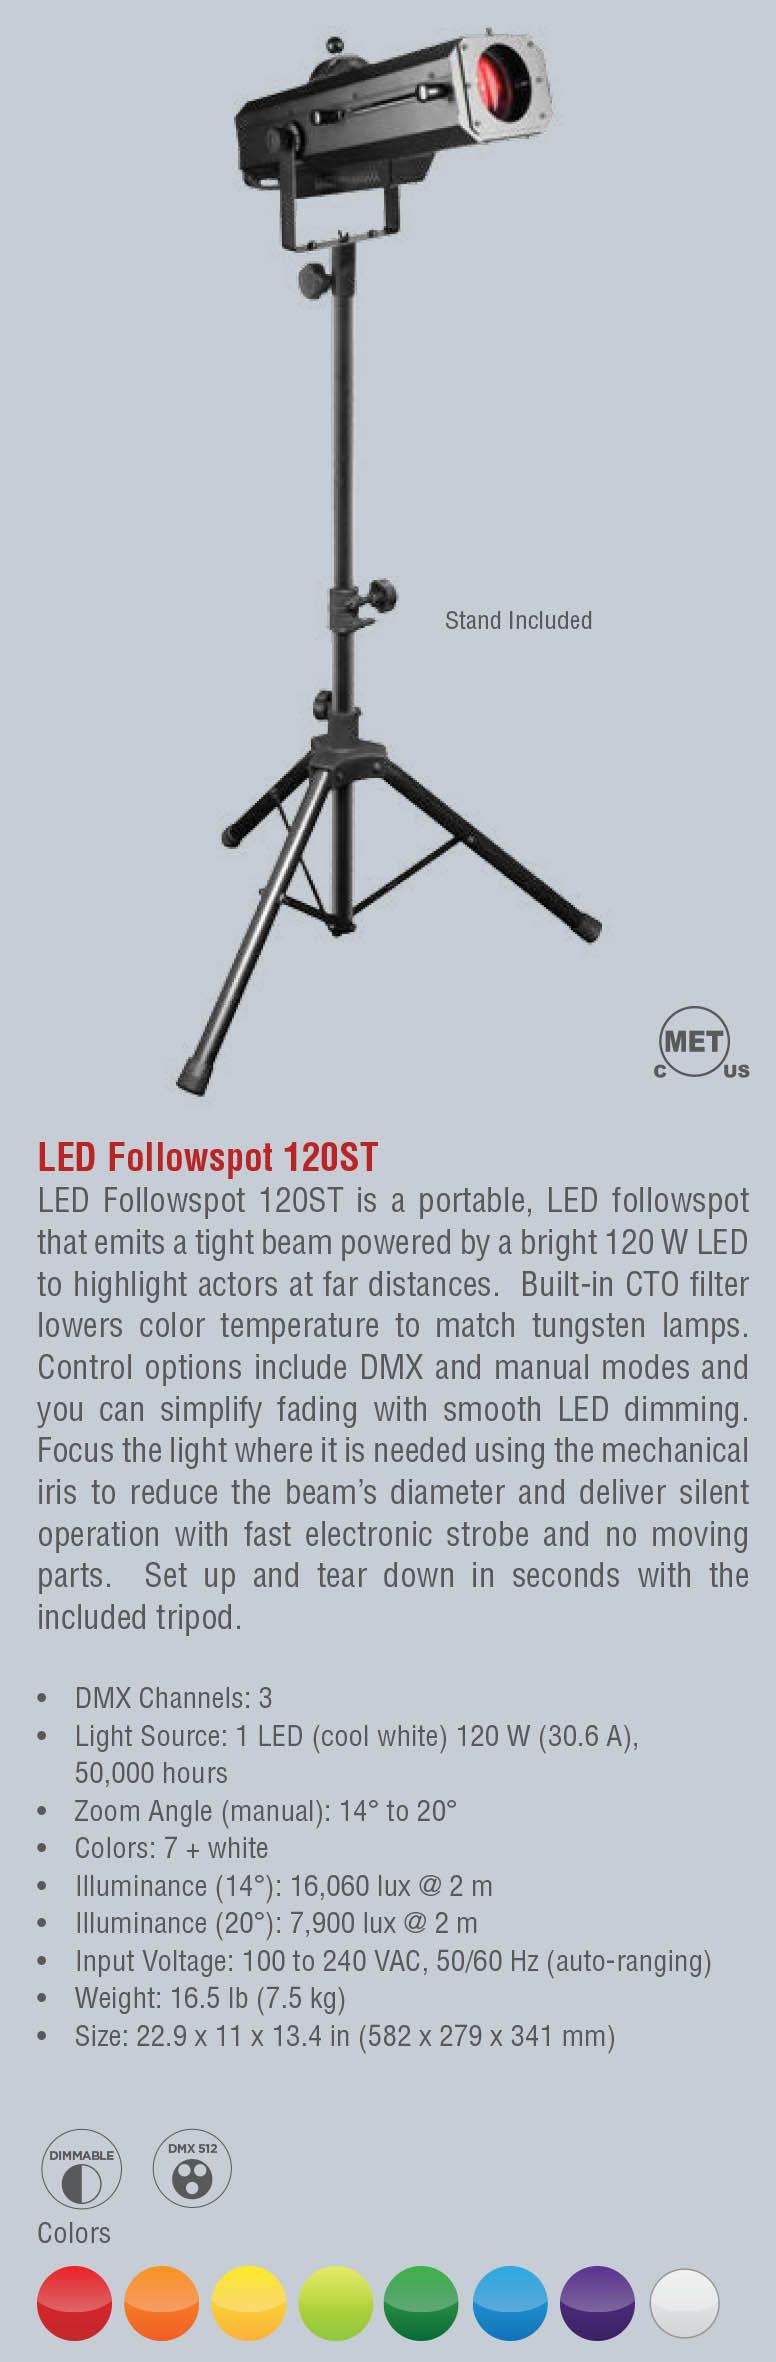 LED Followspot 120ST